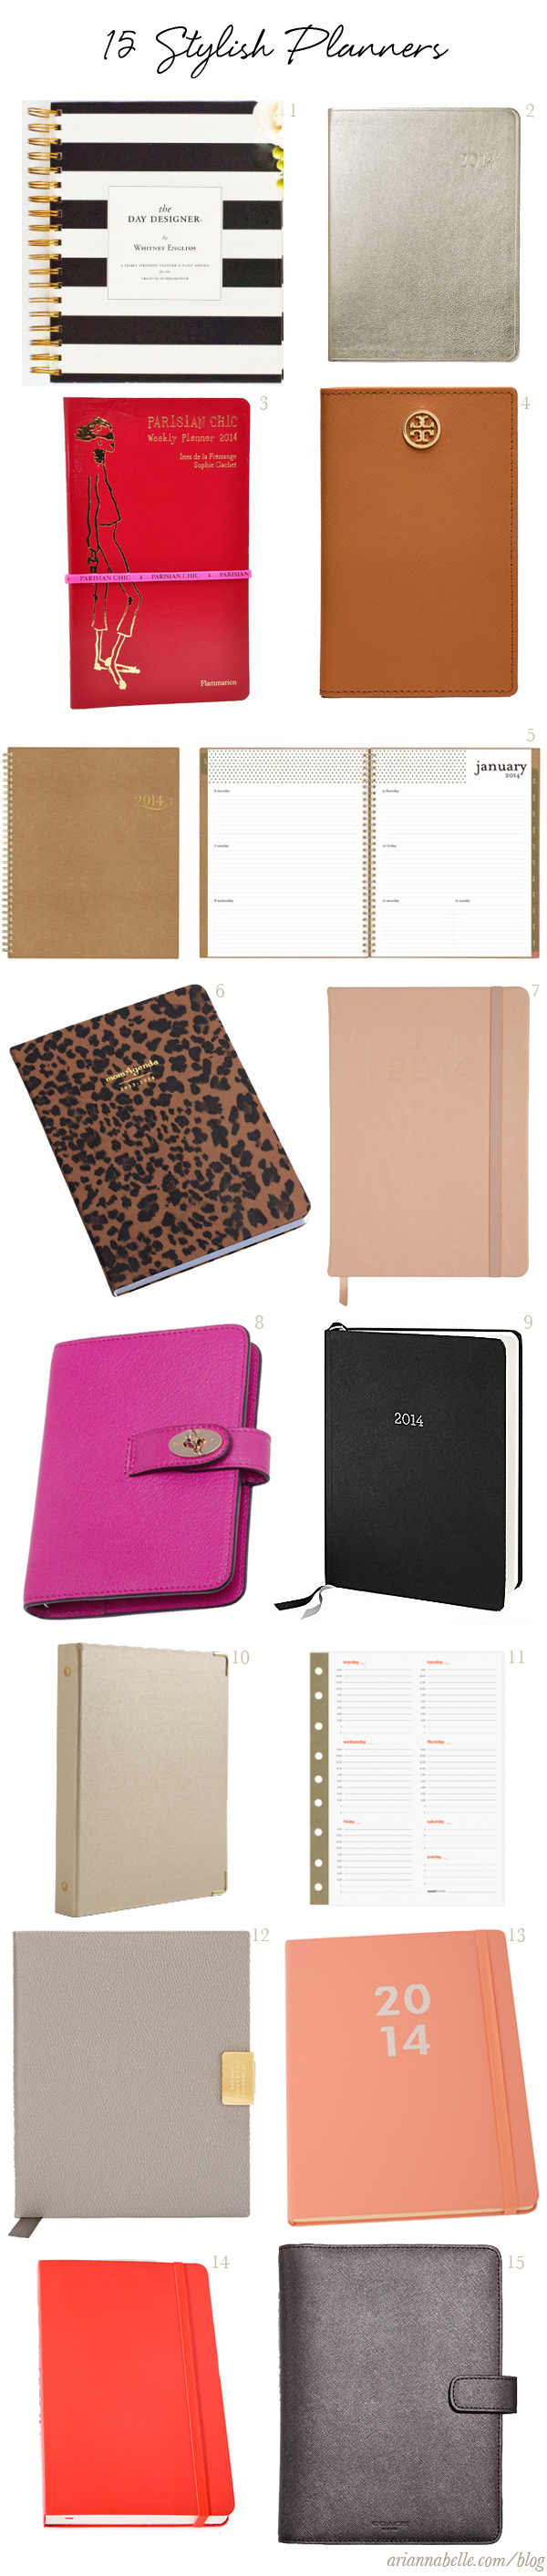 stylish-2014-planners-arianna-belle-blog